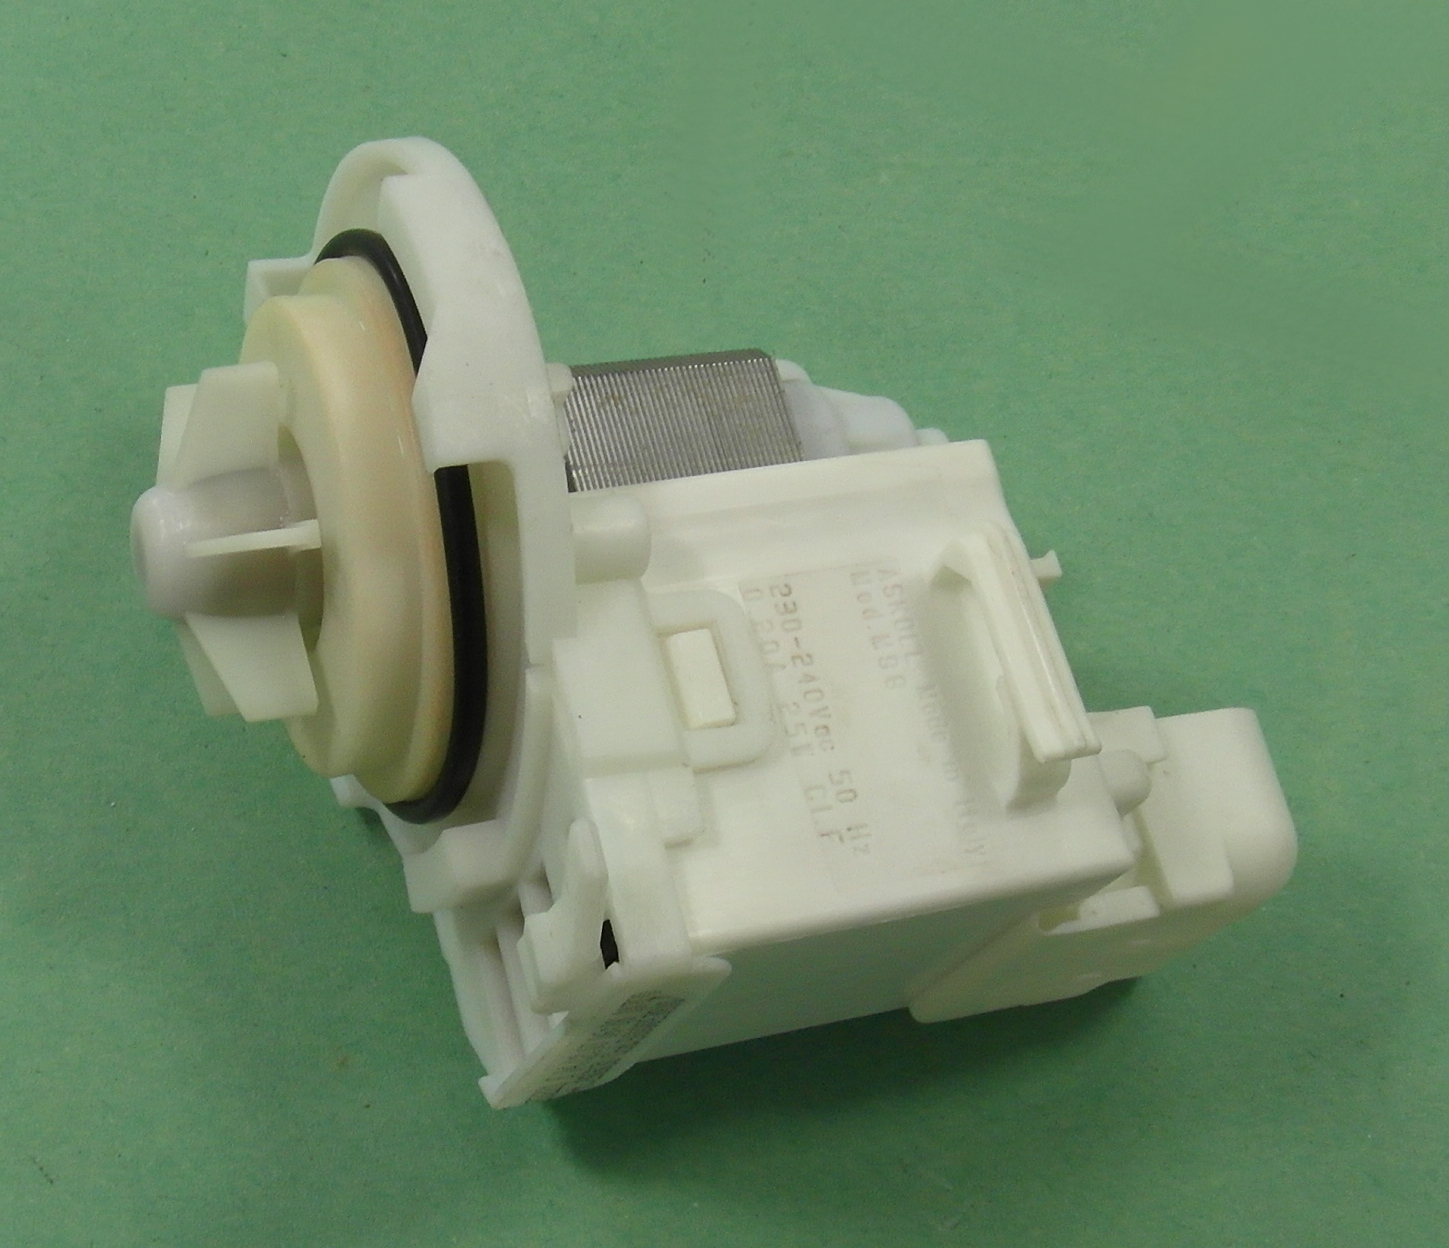 Bosch sgs43e02gb 45 dishwasher drain pump 5600053810 ebay - Bosch dishwasher pump not draining ...